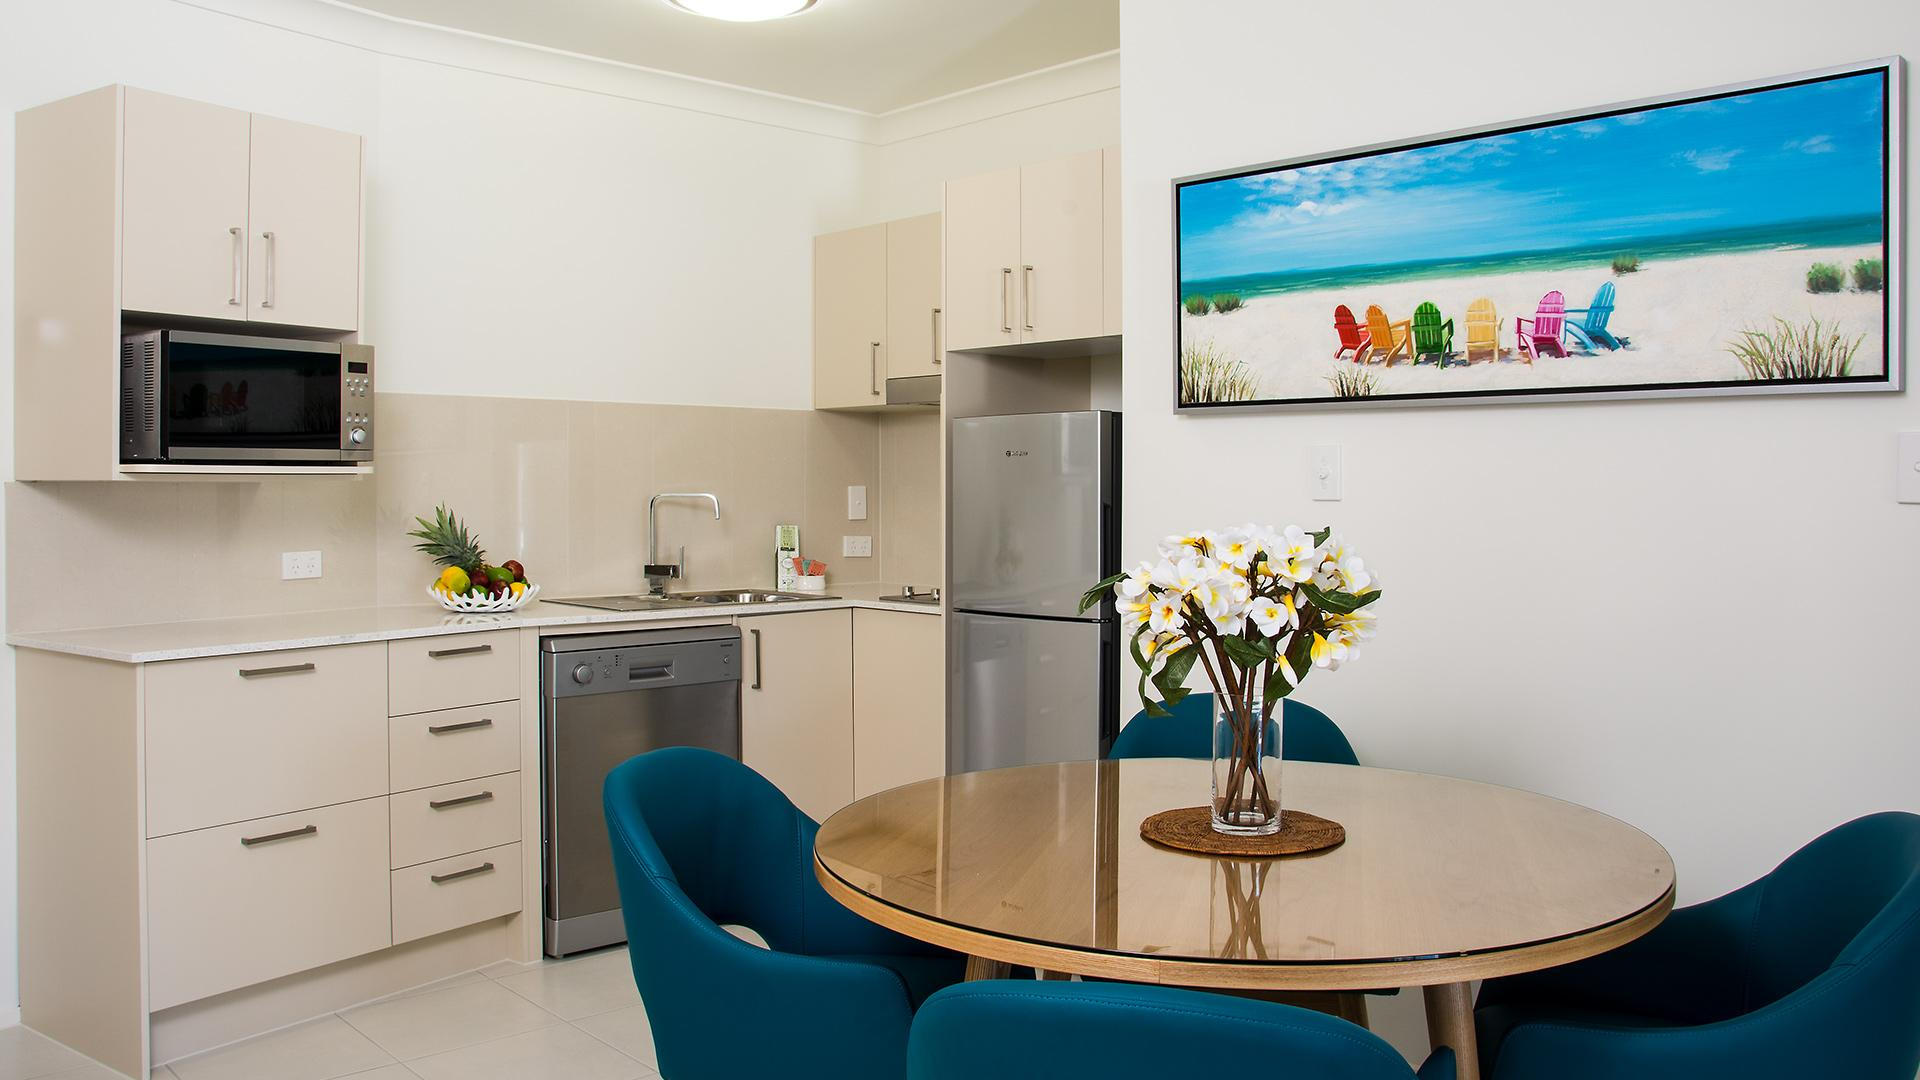 Two-Bedroom Apartment — Swim Out image 1 at 1770 Lagoons Central Apartment Resort by Gladstone Regional, Queensland, Australia